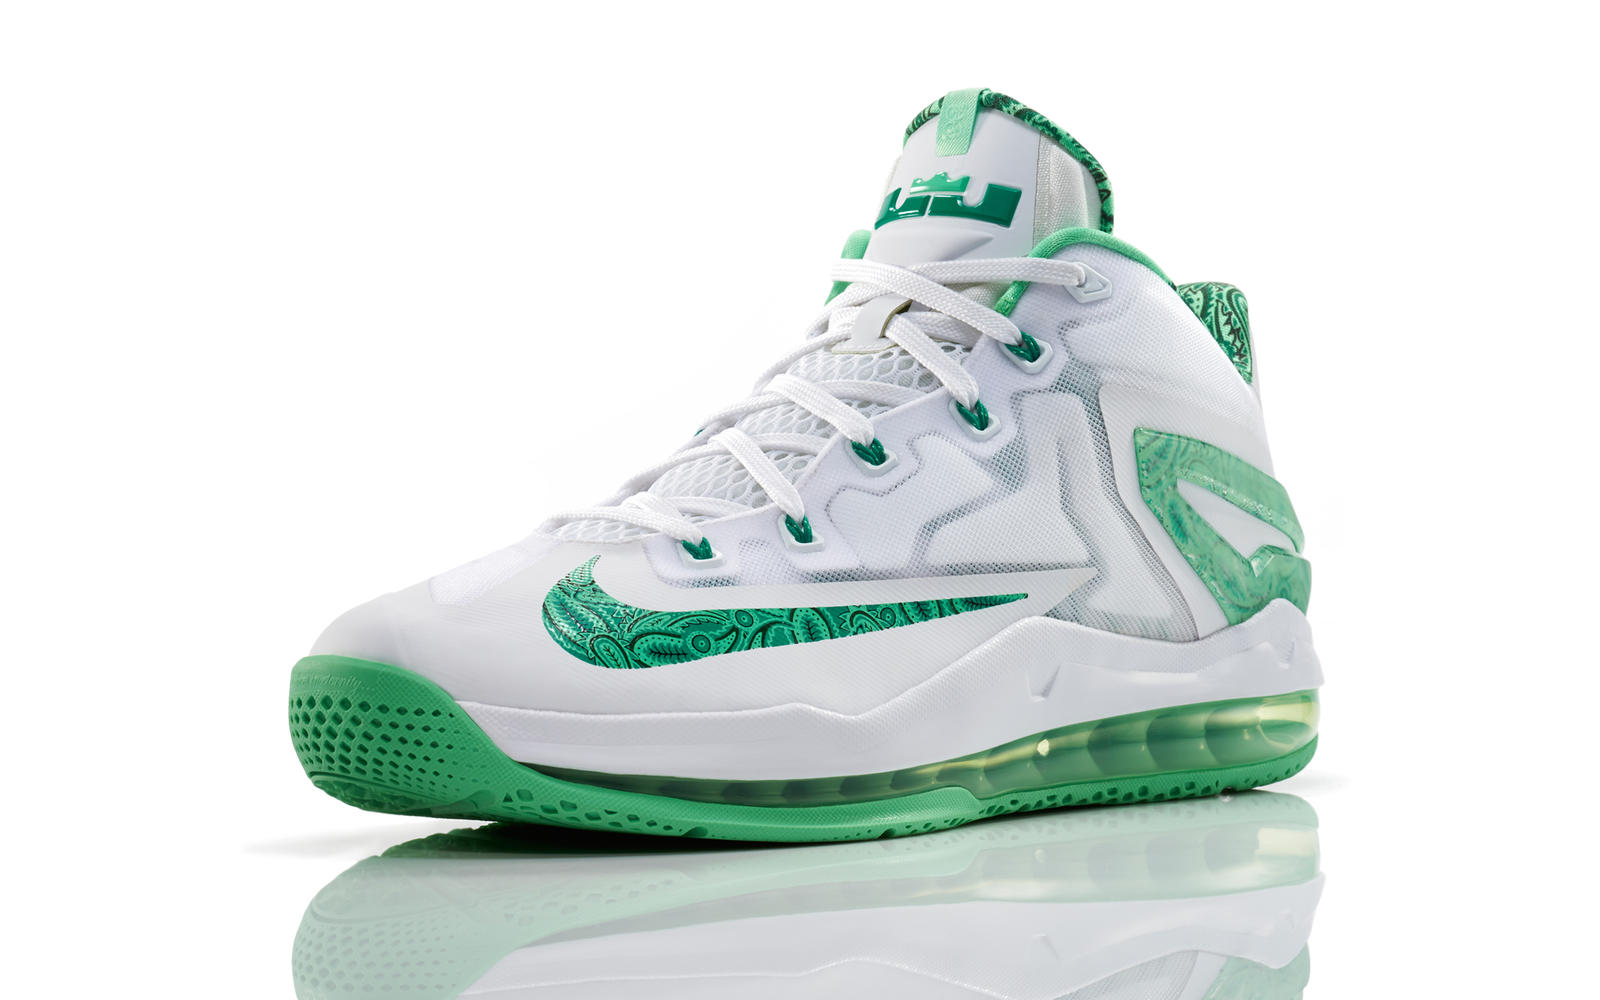 the latest 3a7a8 cf923 The 2014 Nike Basketball Easter Collection - Nike News. The LEBRON 11 ...